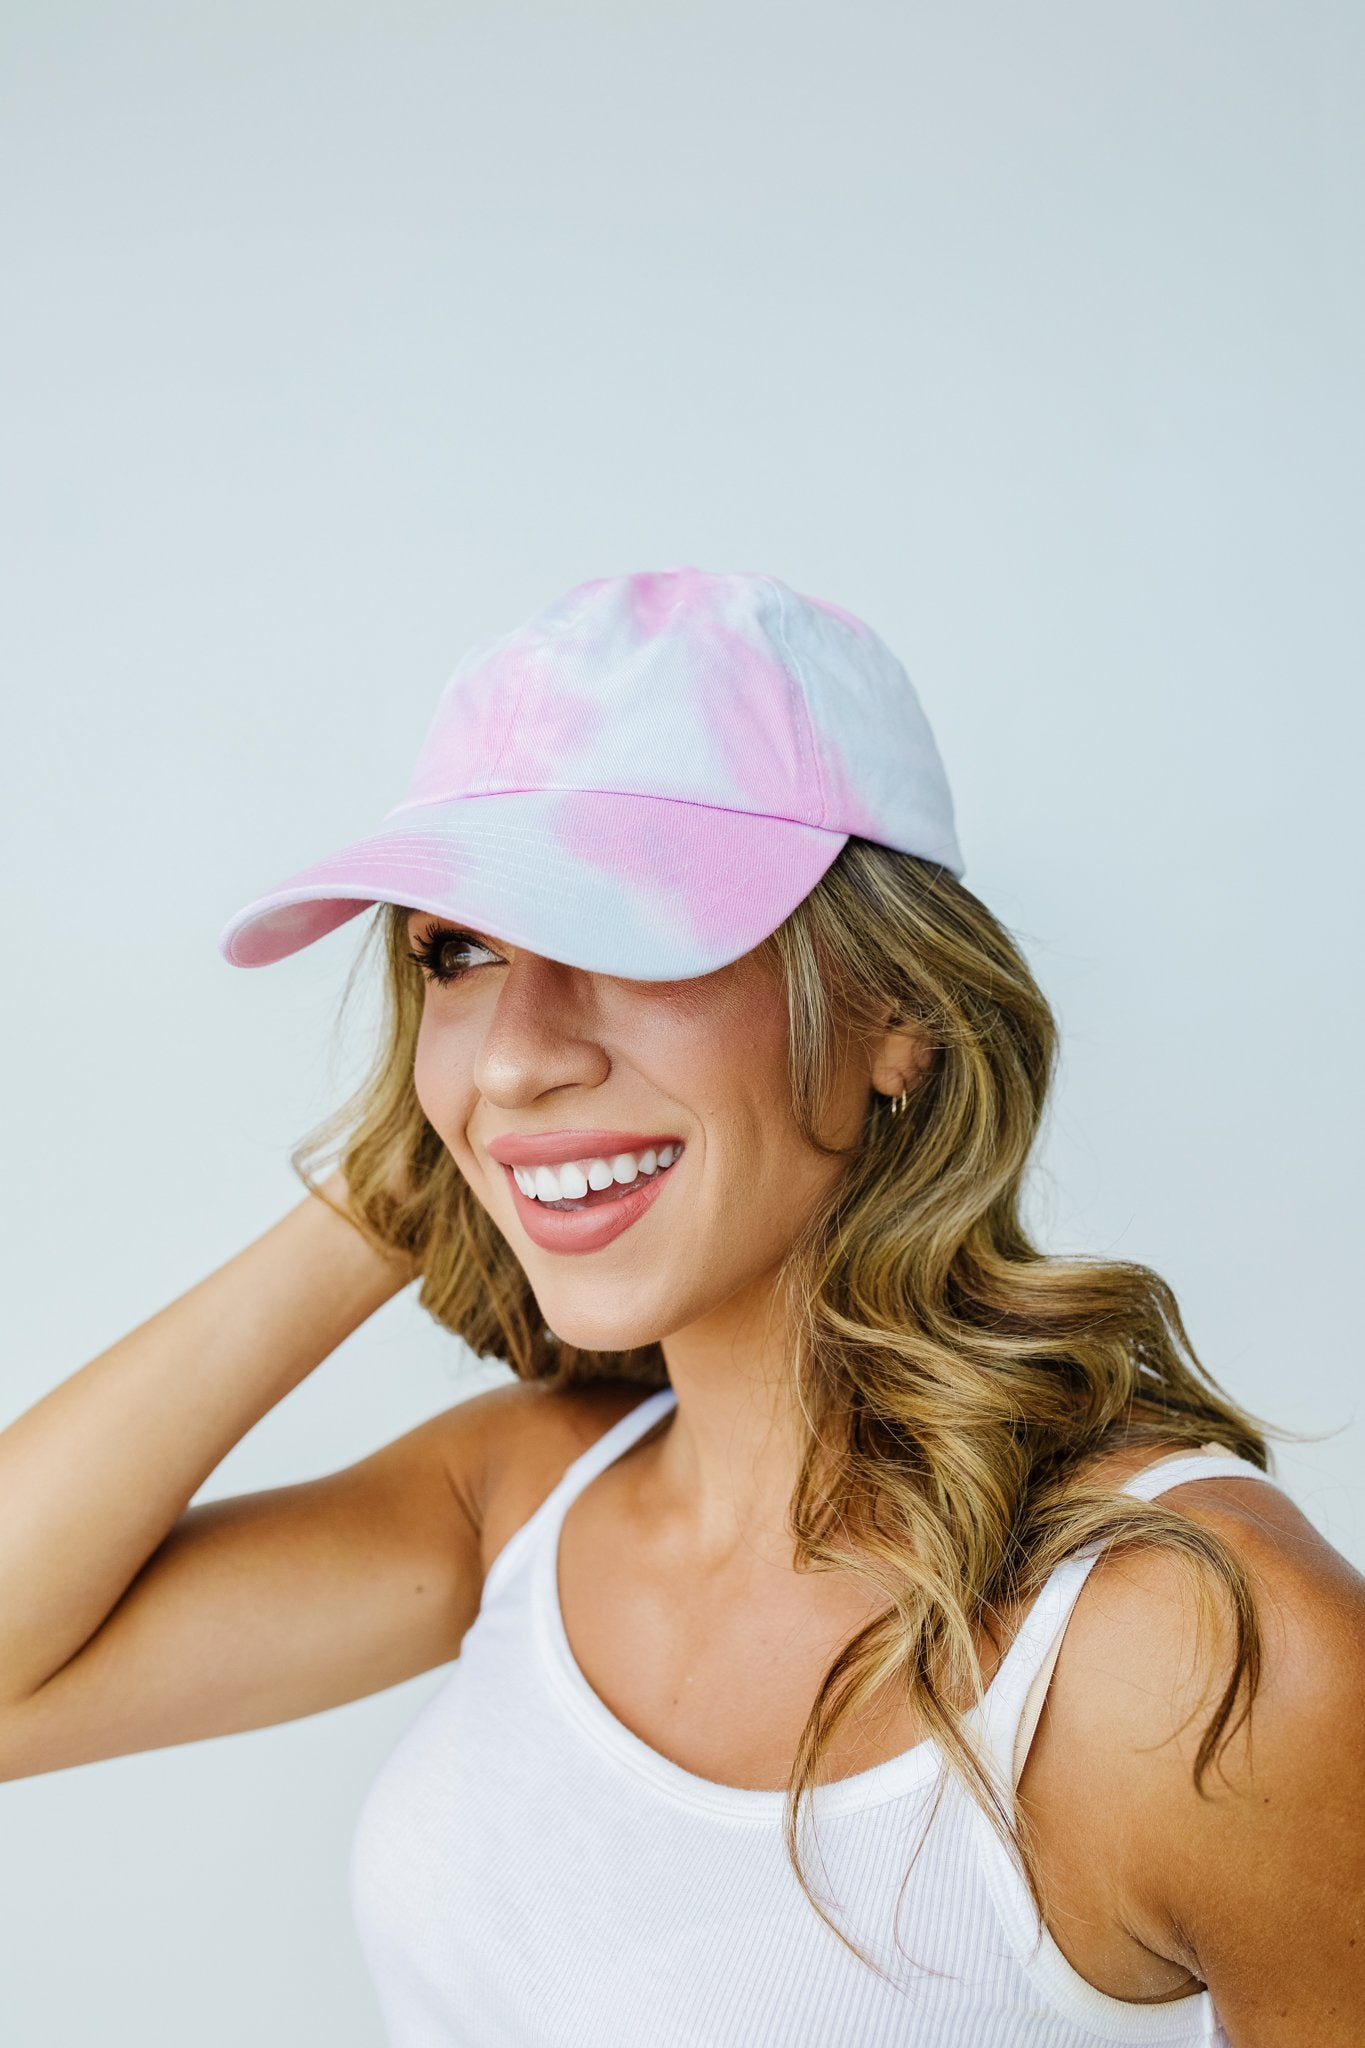 Bed Head Tie Dye Cap In Cotton Candy - BeeLovely Boutique